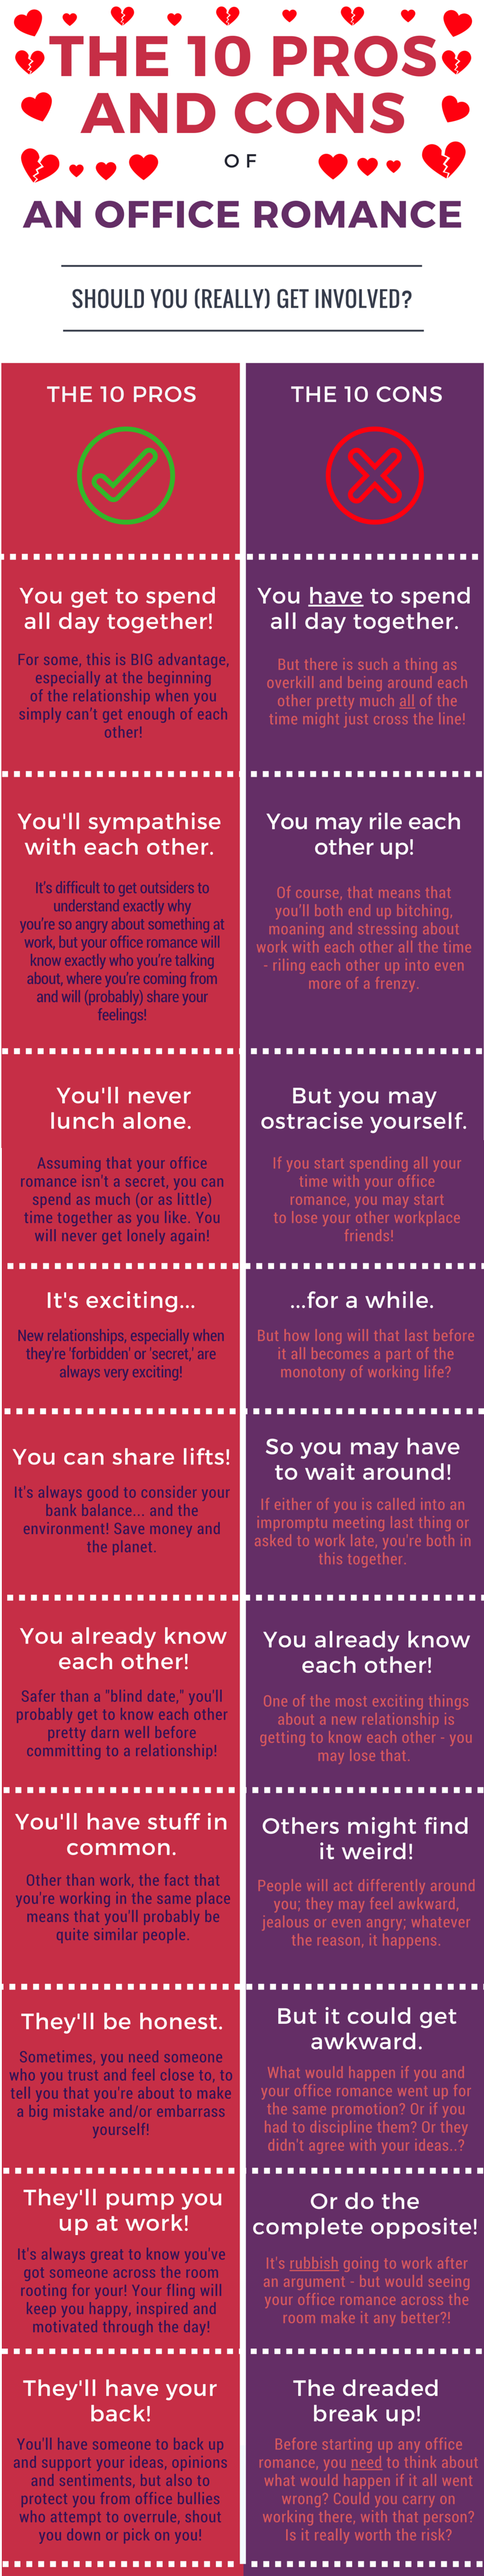 office romance infographic